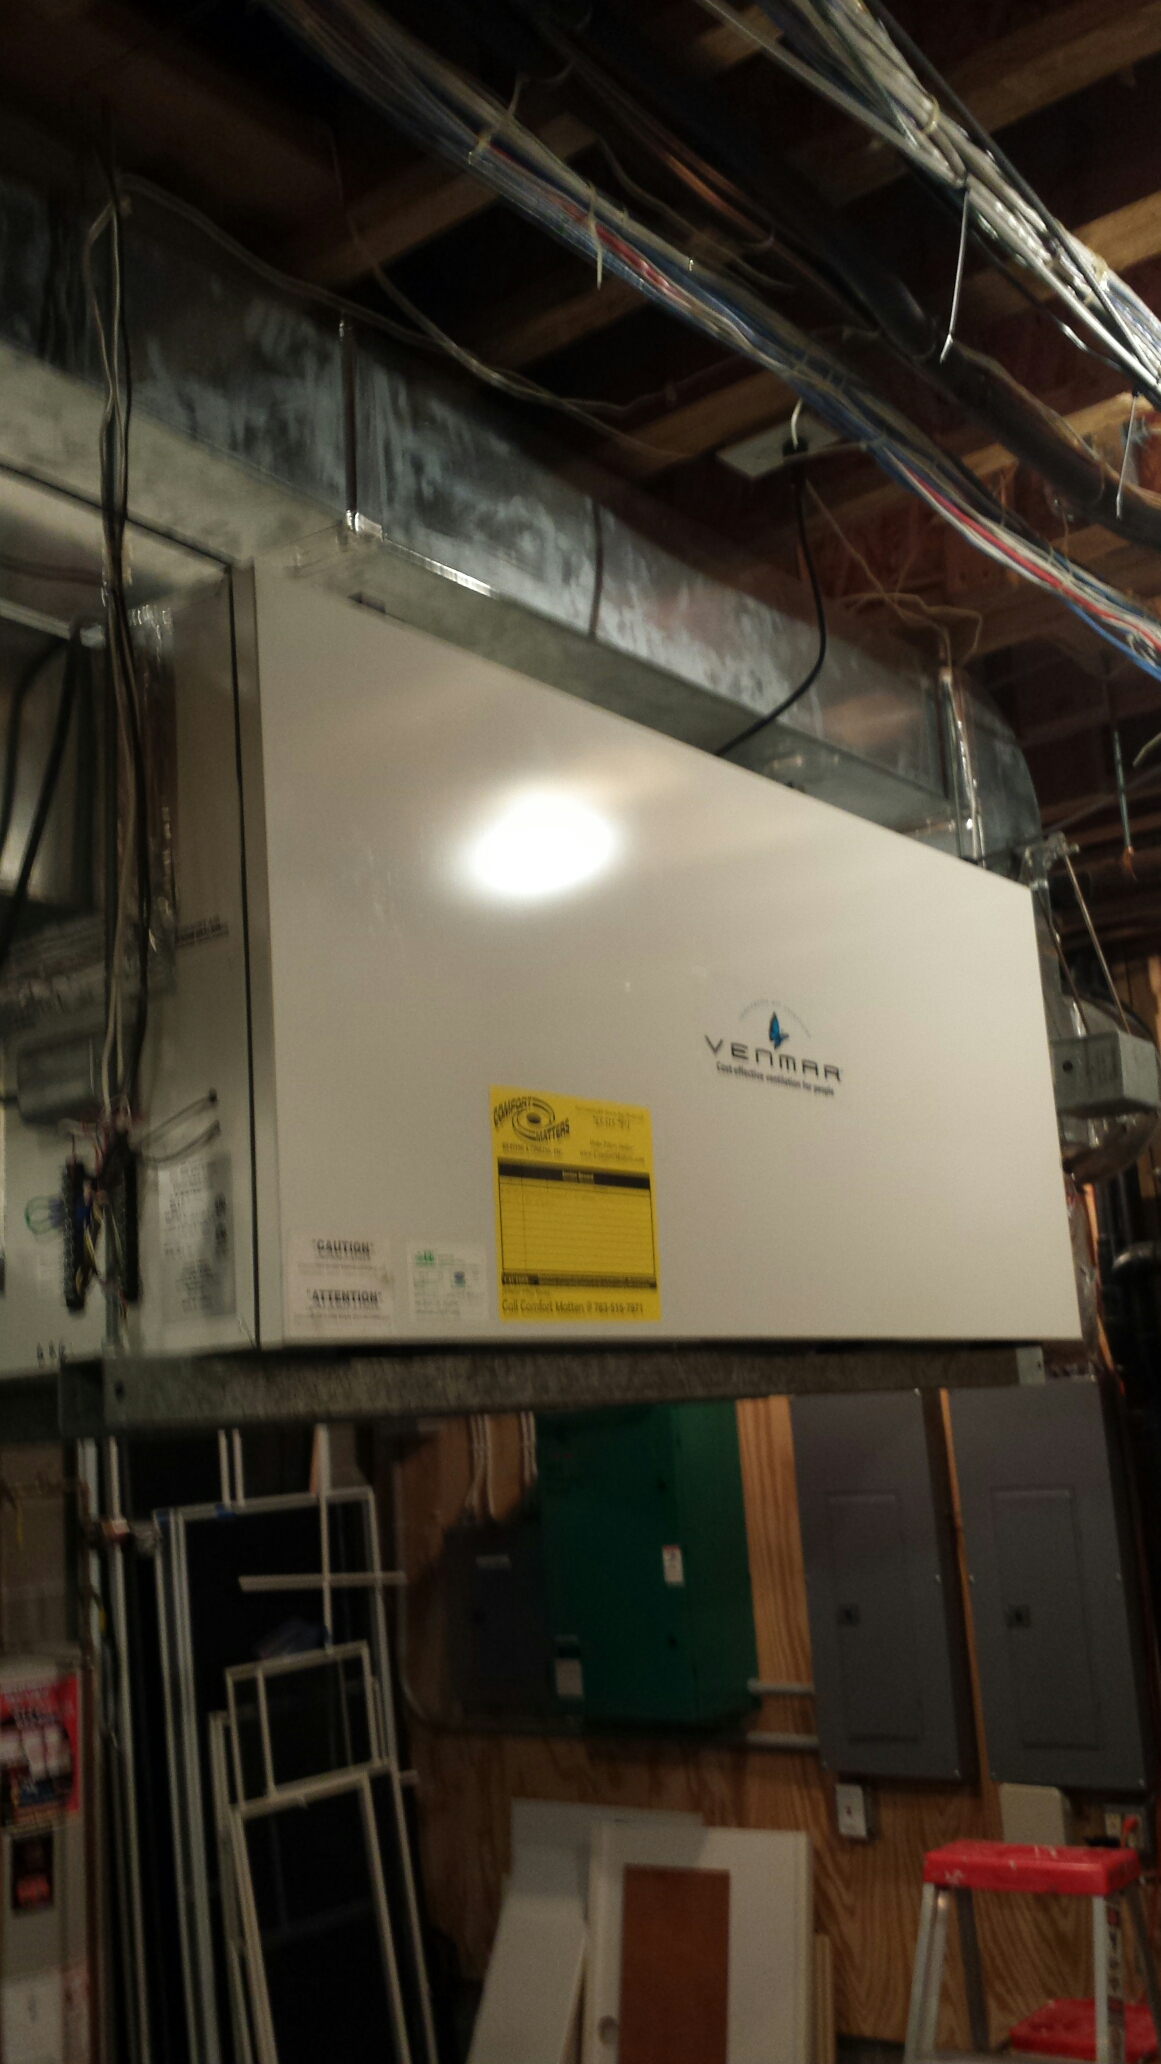 Orono, MN - Air exchanger and dehumidifier maintenance. Performed a filter replacement on a Venmar air exchanger and on a Honeywell dehumidifier.